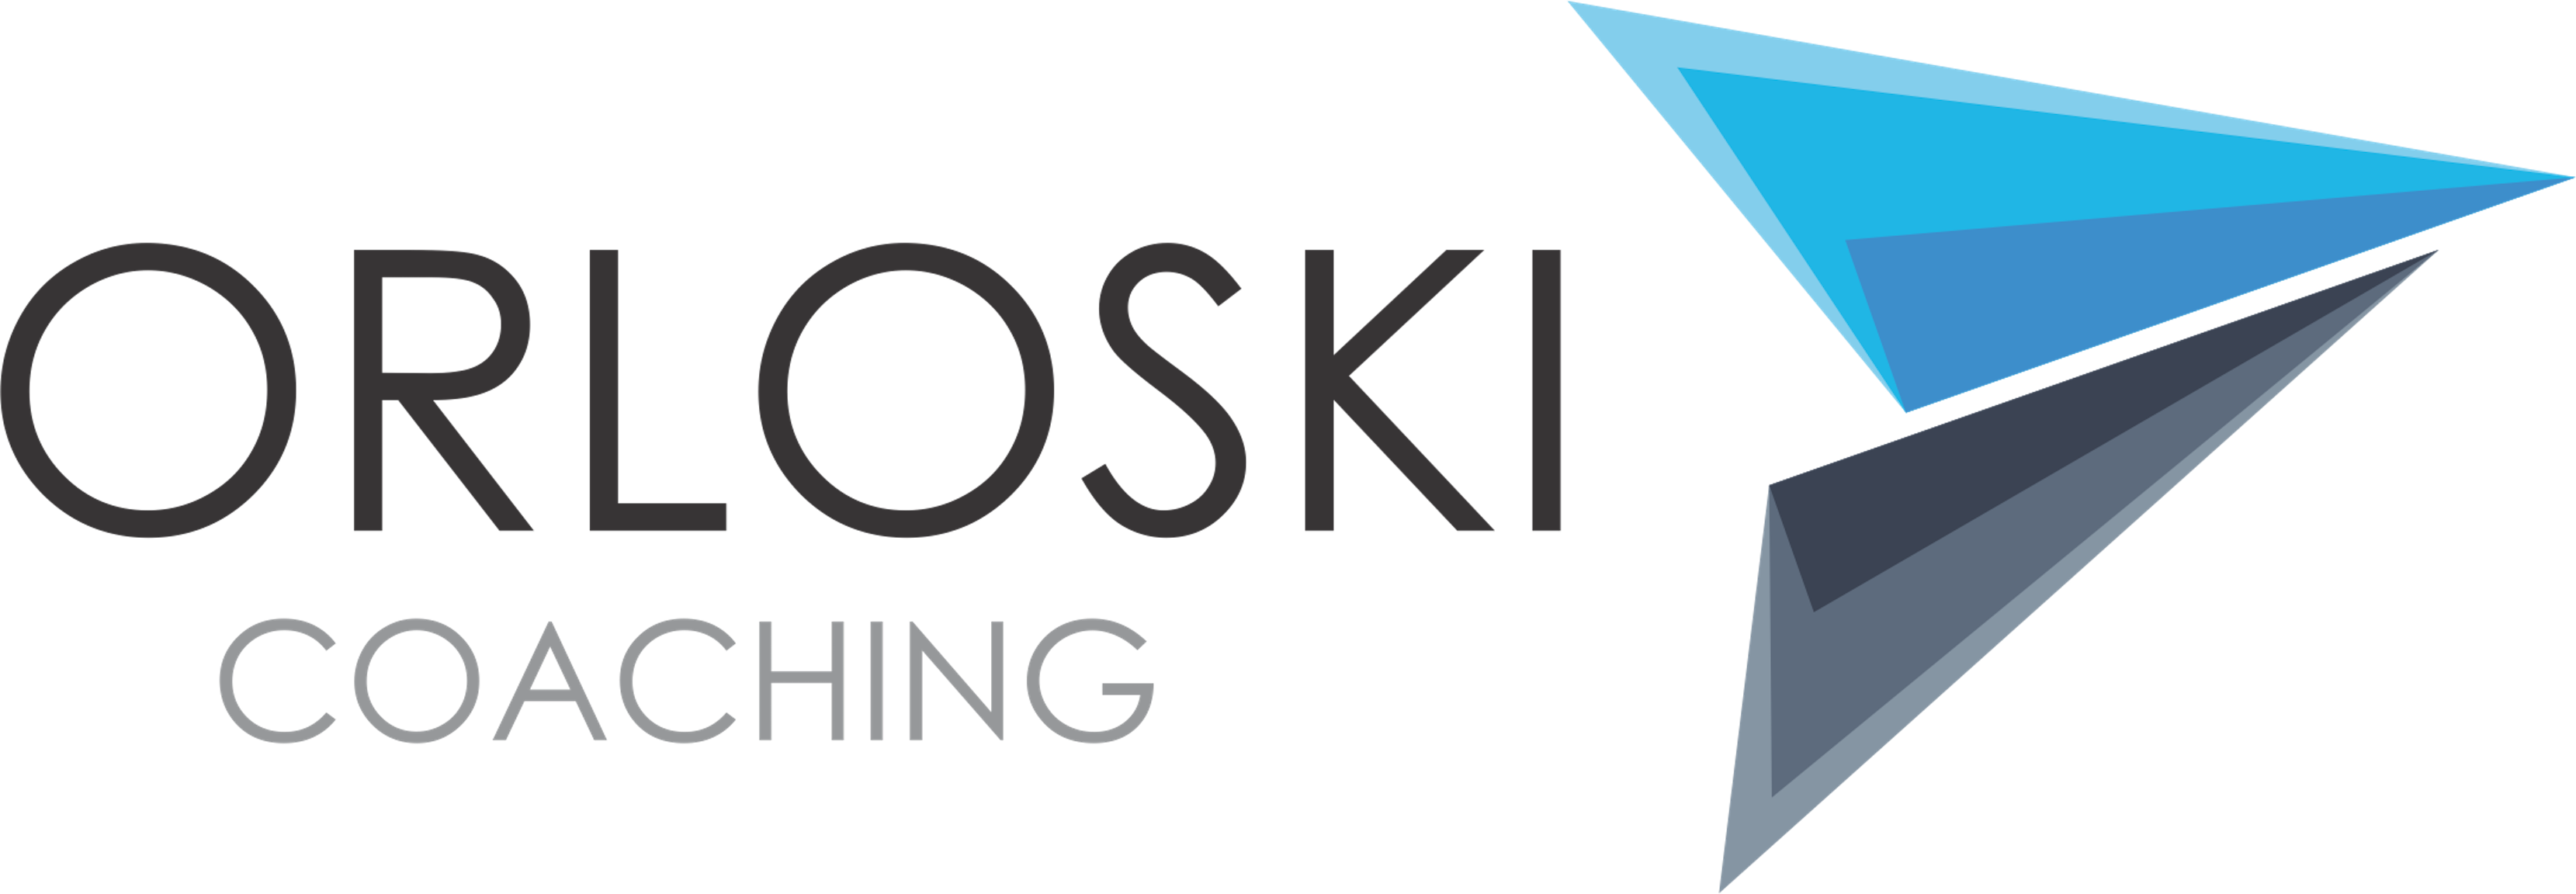 Logo-orloski-coaching